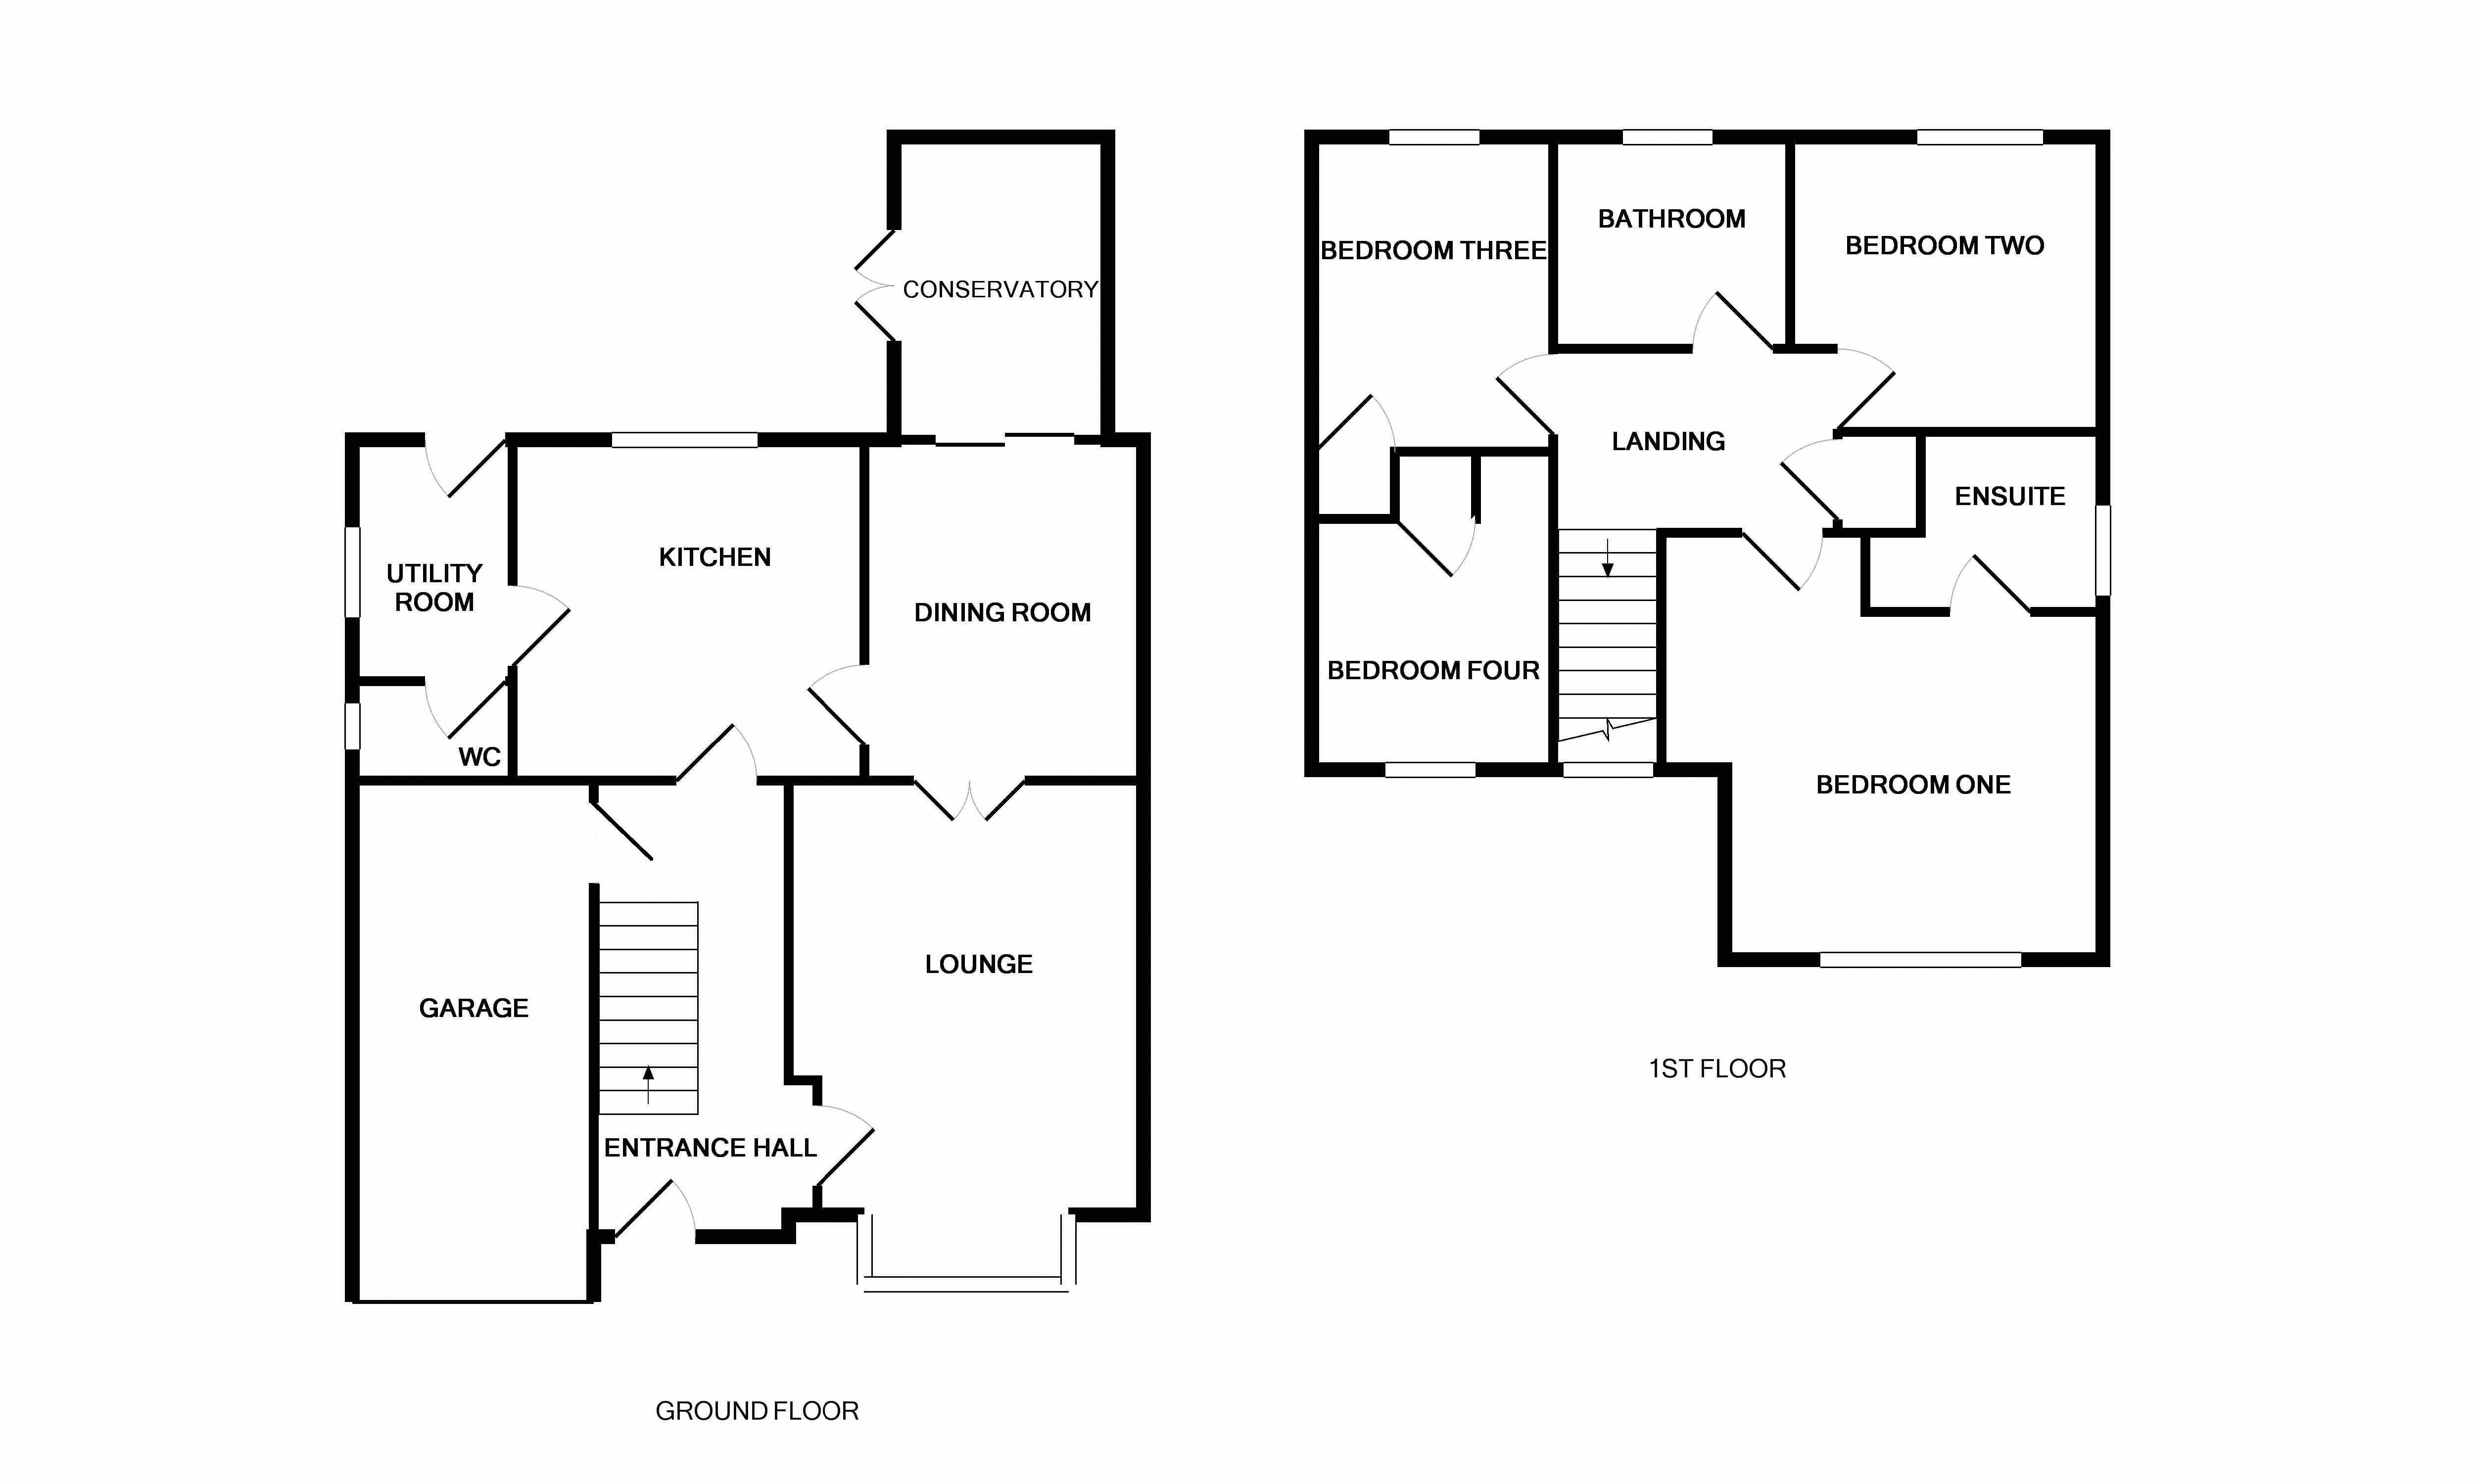 4 Bedroom House For Sale In Dunstable